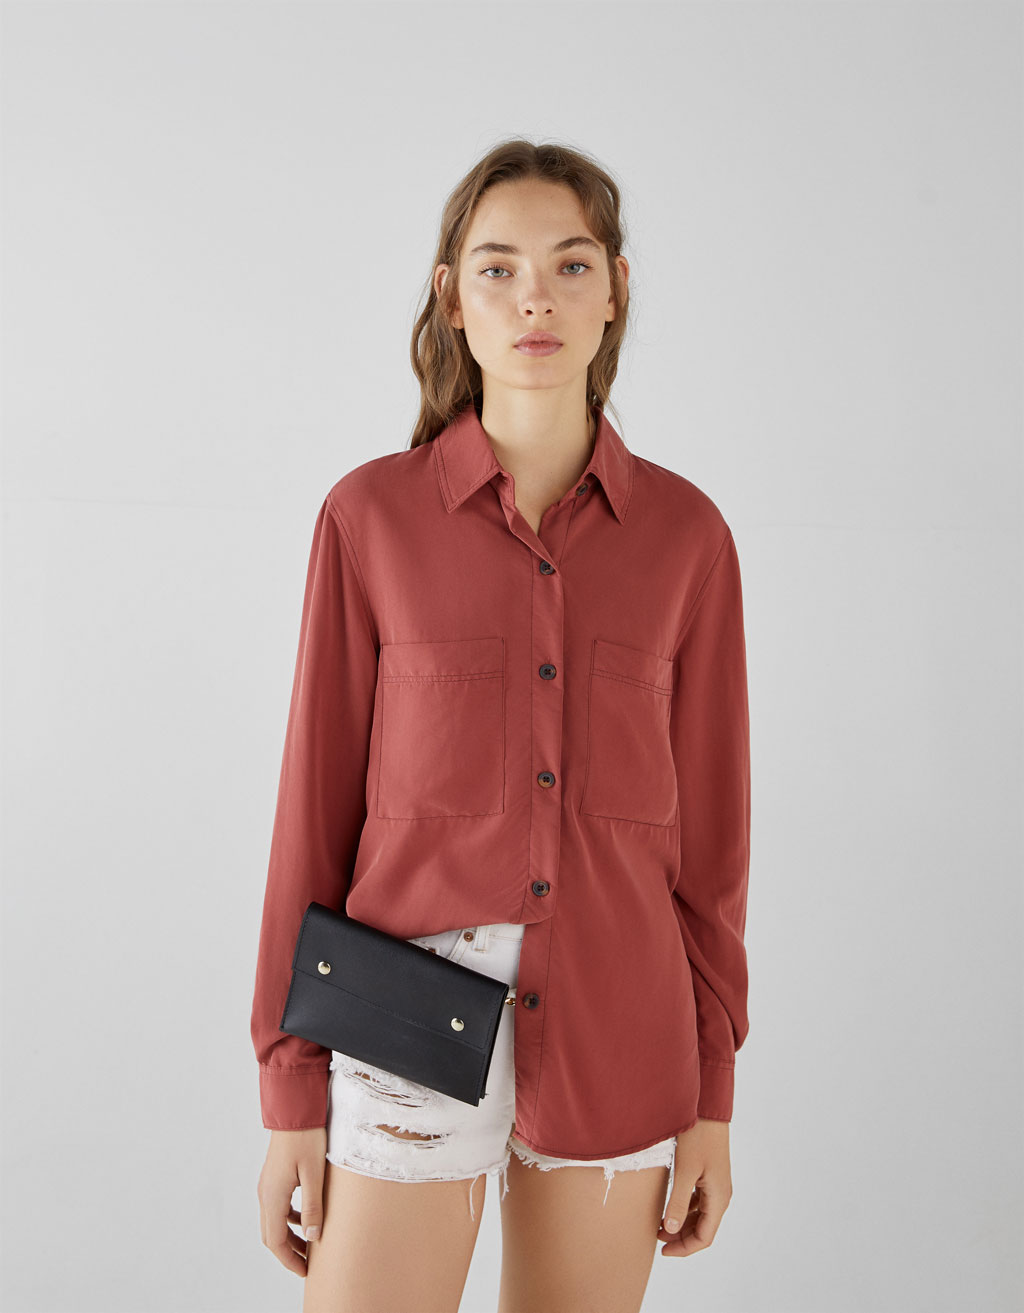 Contrasting shirt with pockets